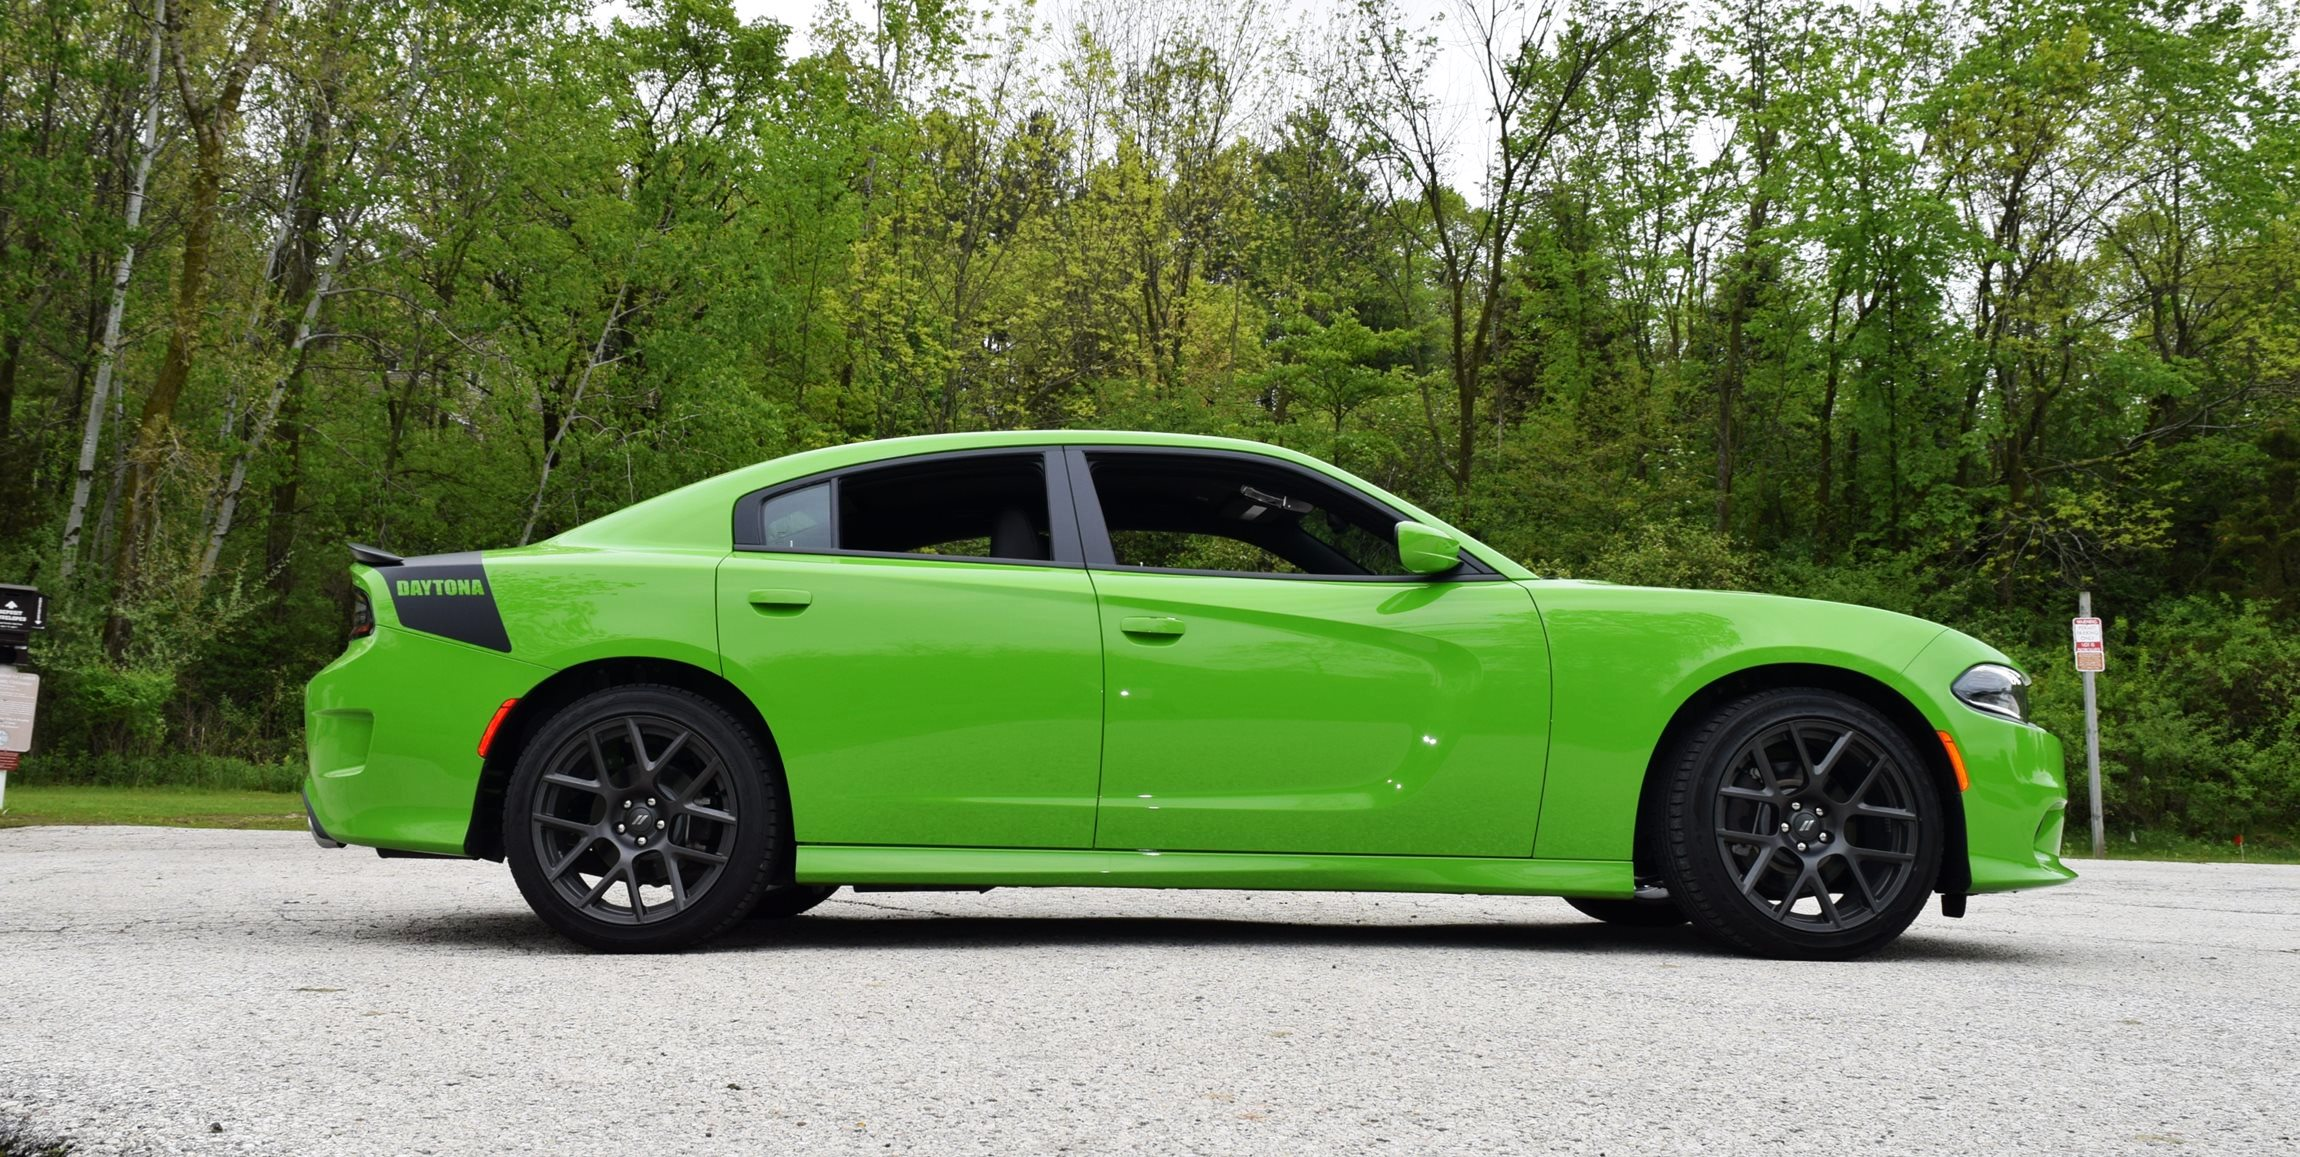 2017 Dodge Charger DAYTONA 13